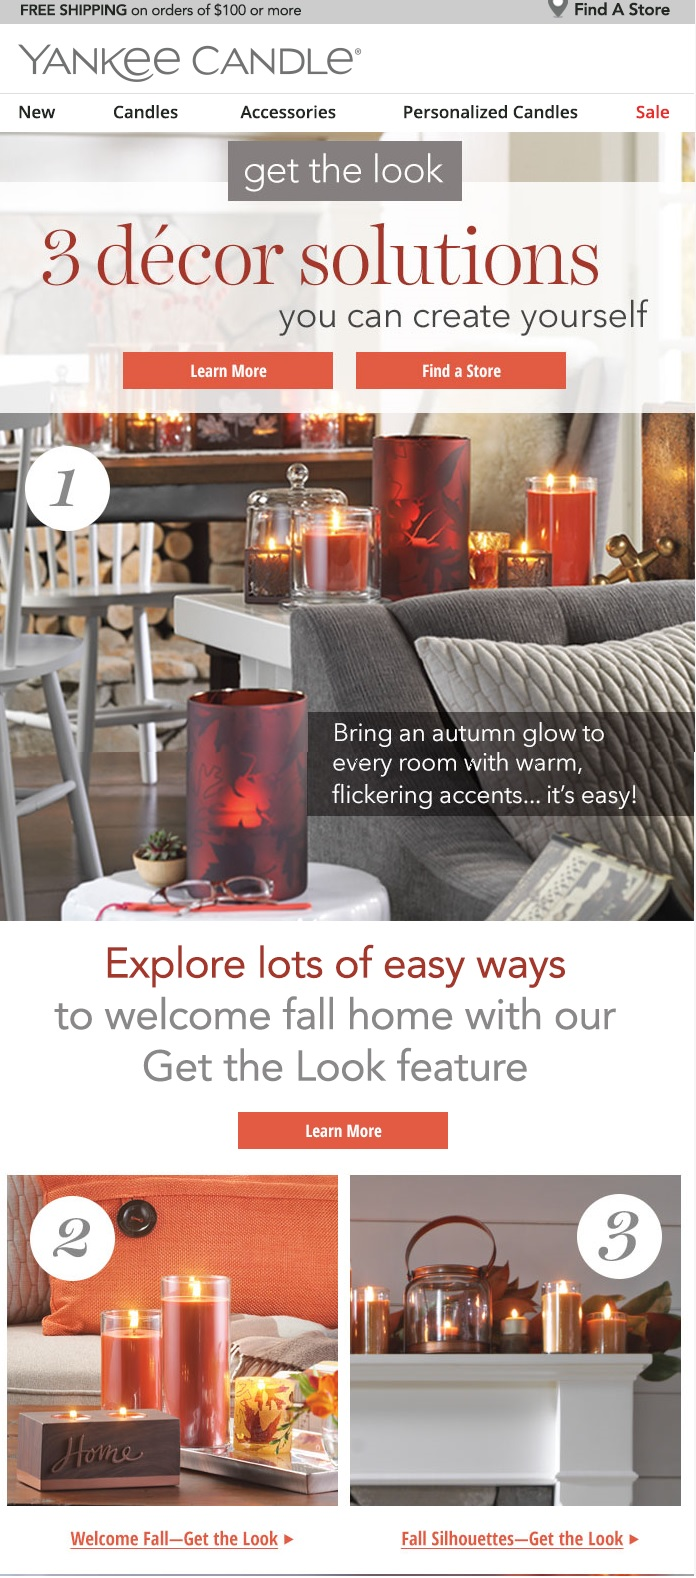 Yankee Candle recently changed its logo and email artwork for the fall and holiday seasons.